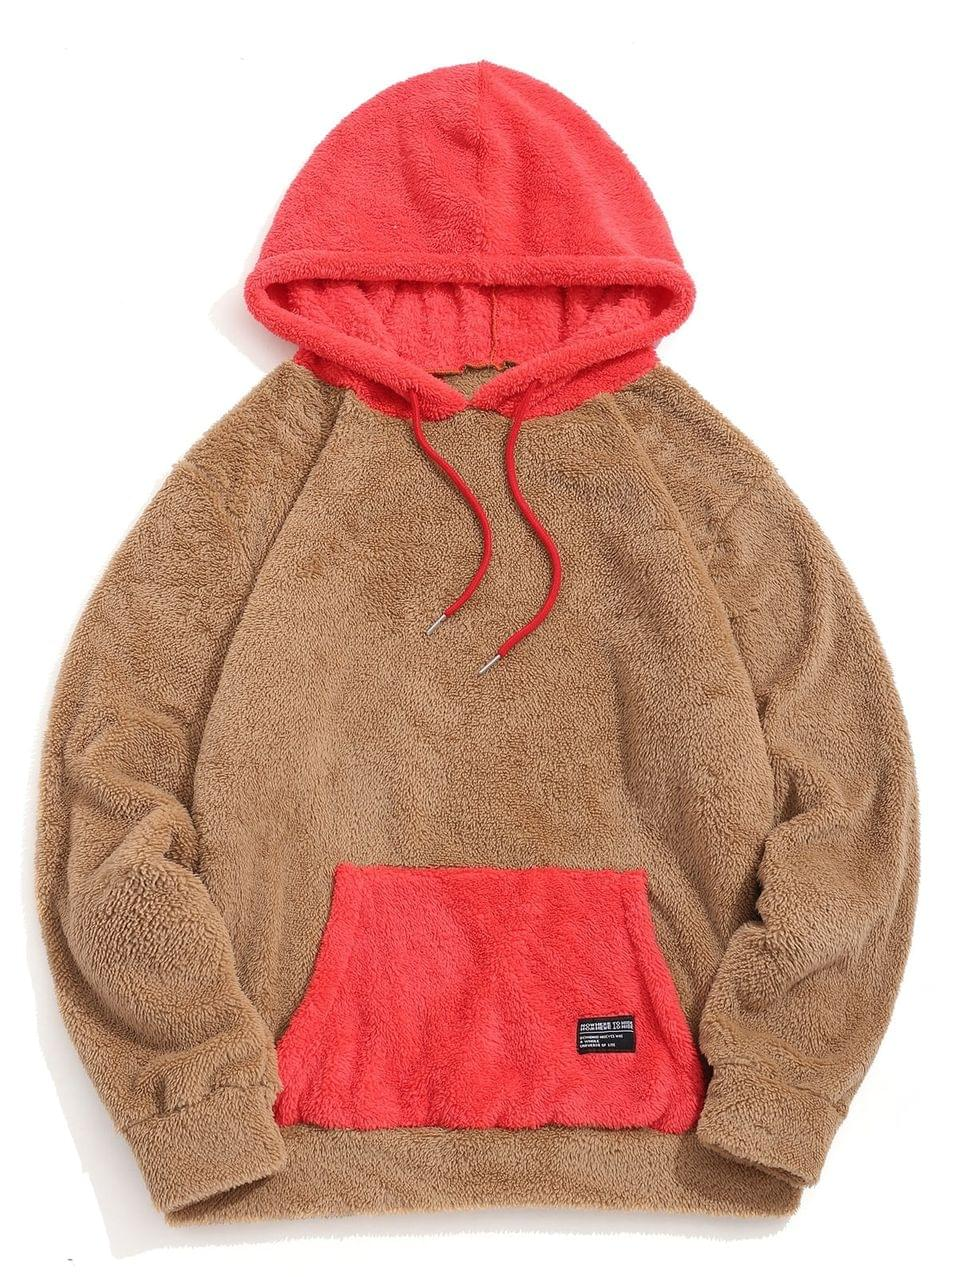 Men's Colorblock Kangaroo Pocket Fluffy Hoodie - Caramel 2xl